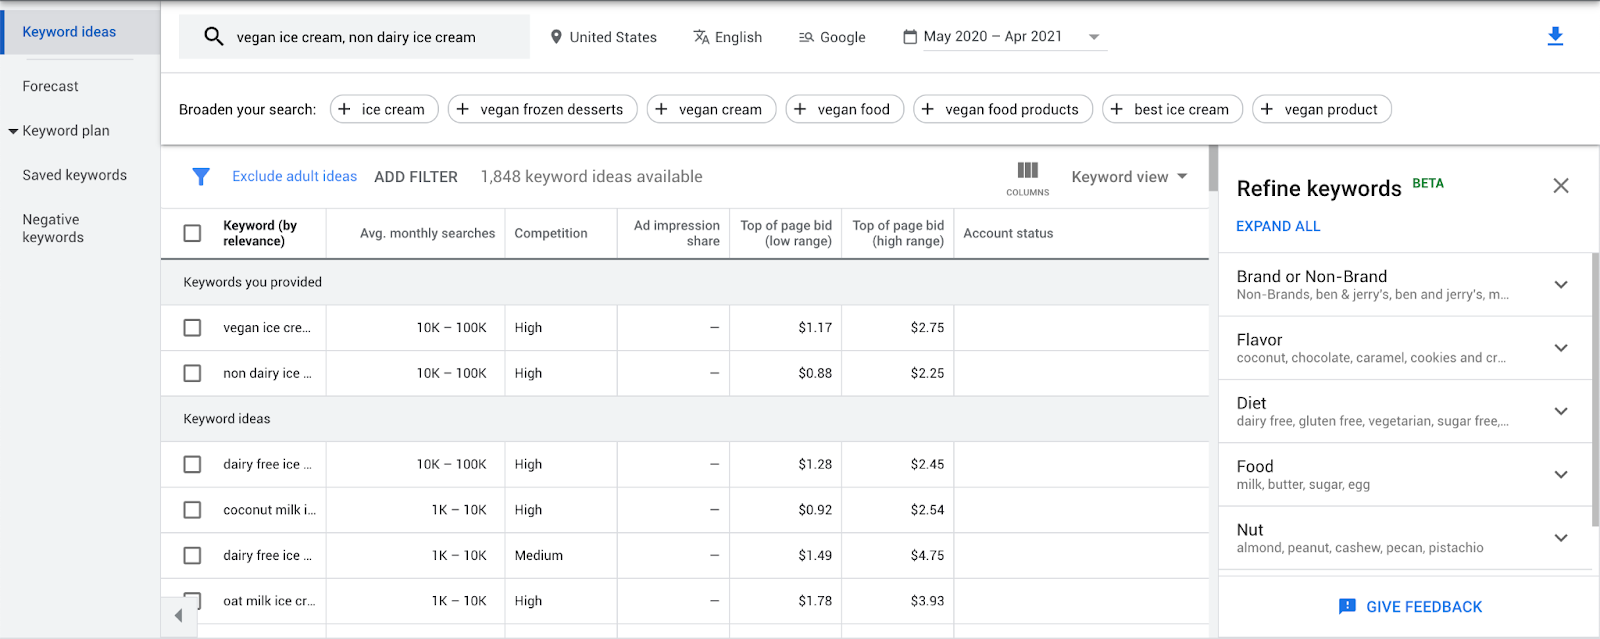 Add some keywords to see keyword ideas generated by the GKP